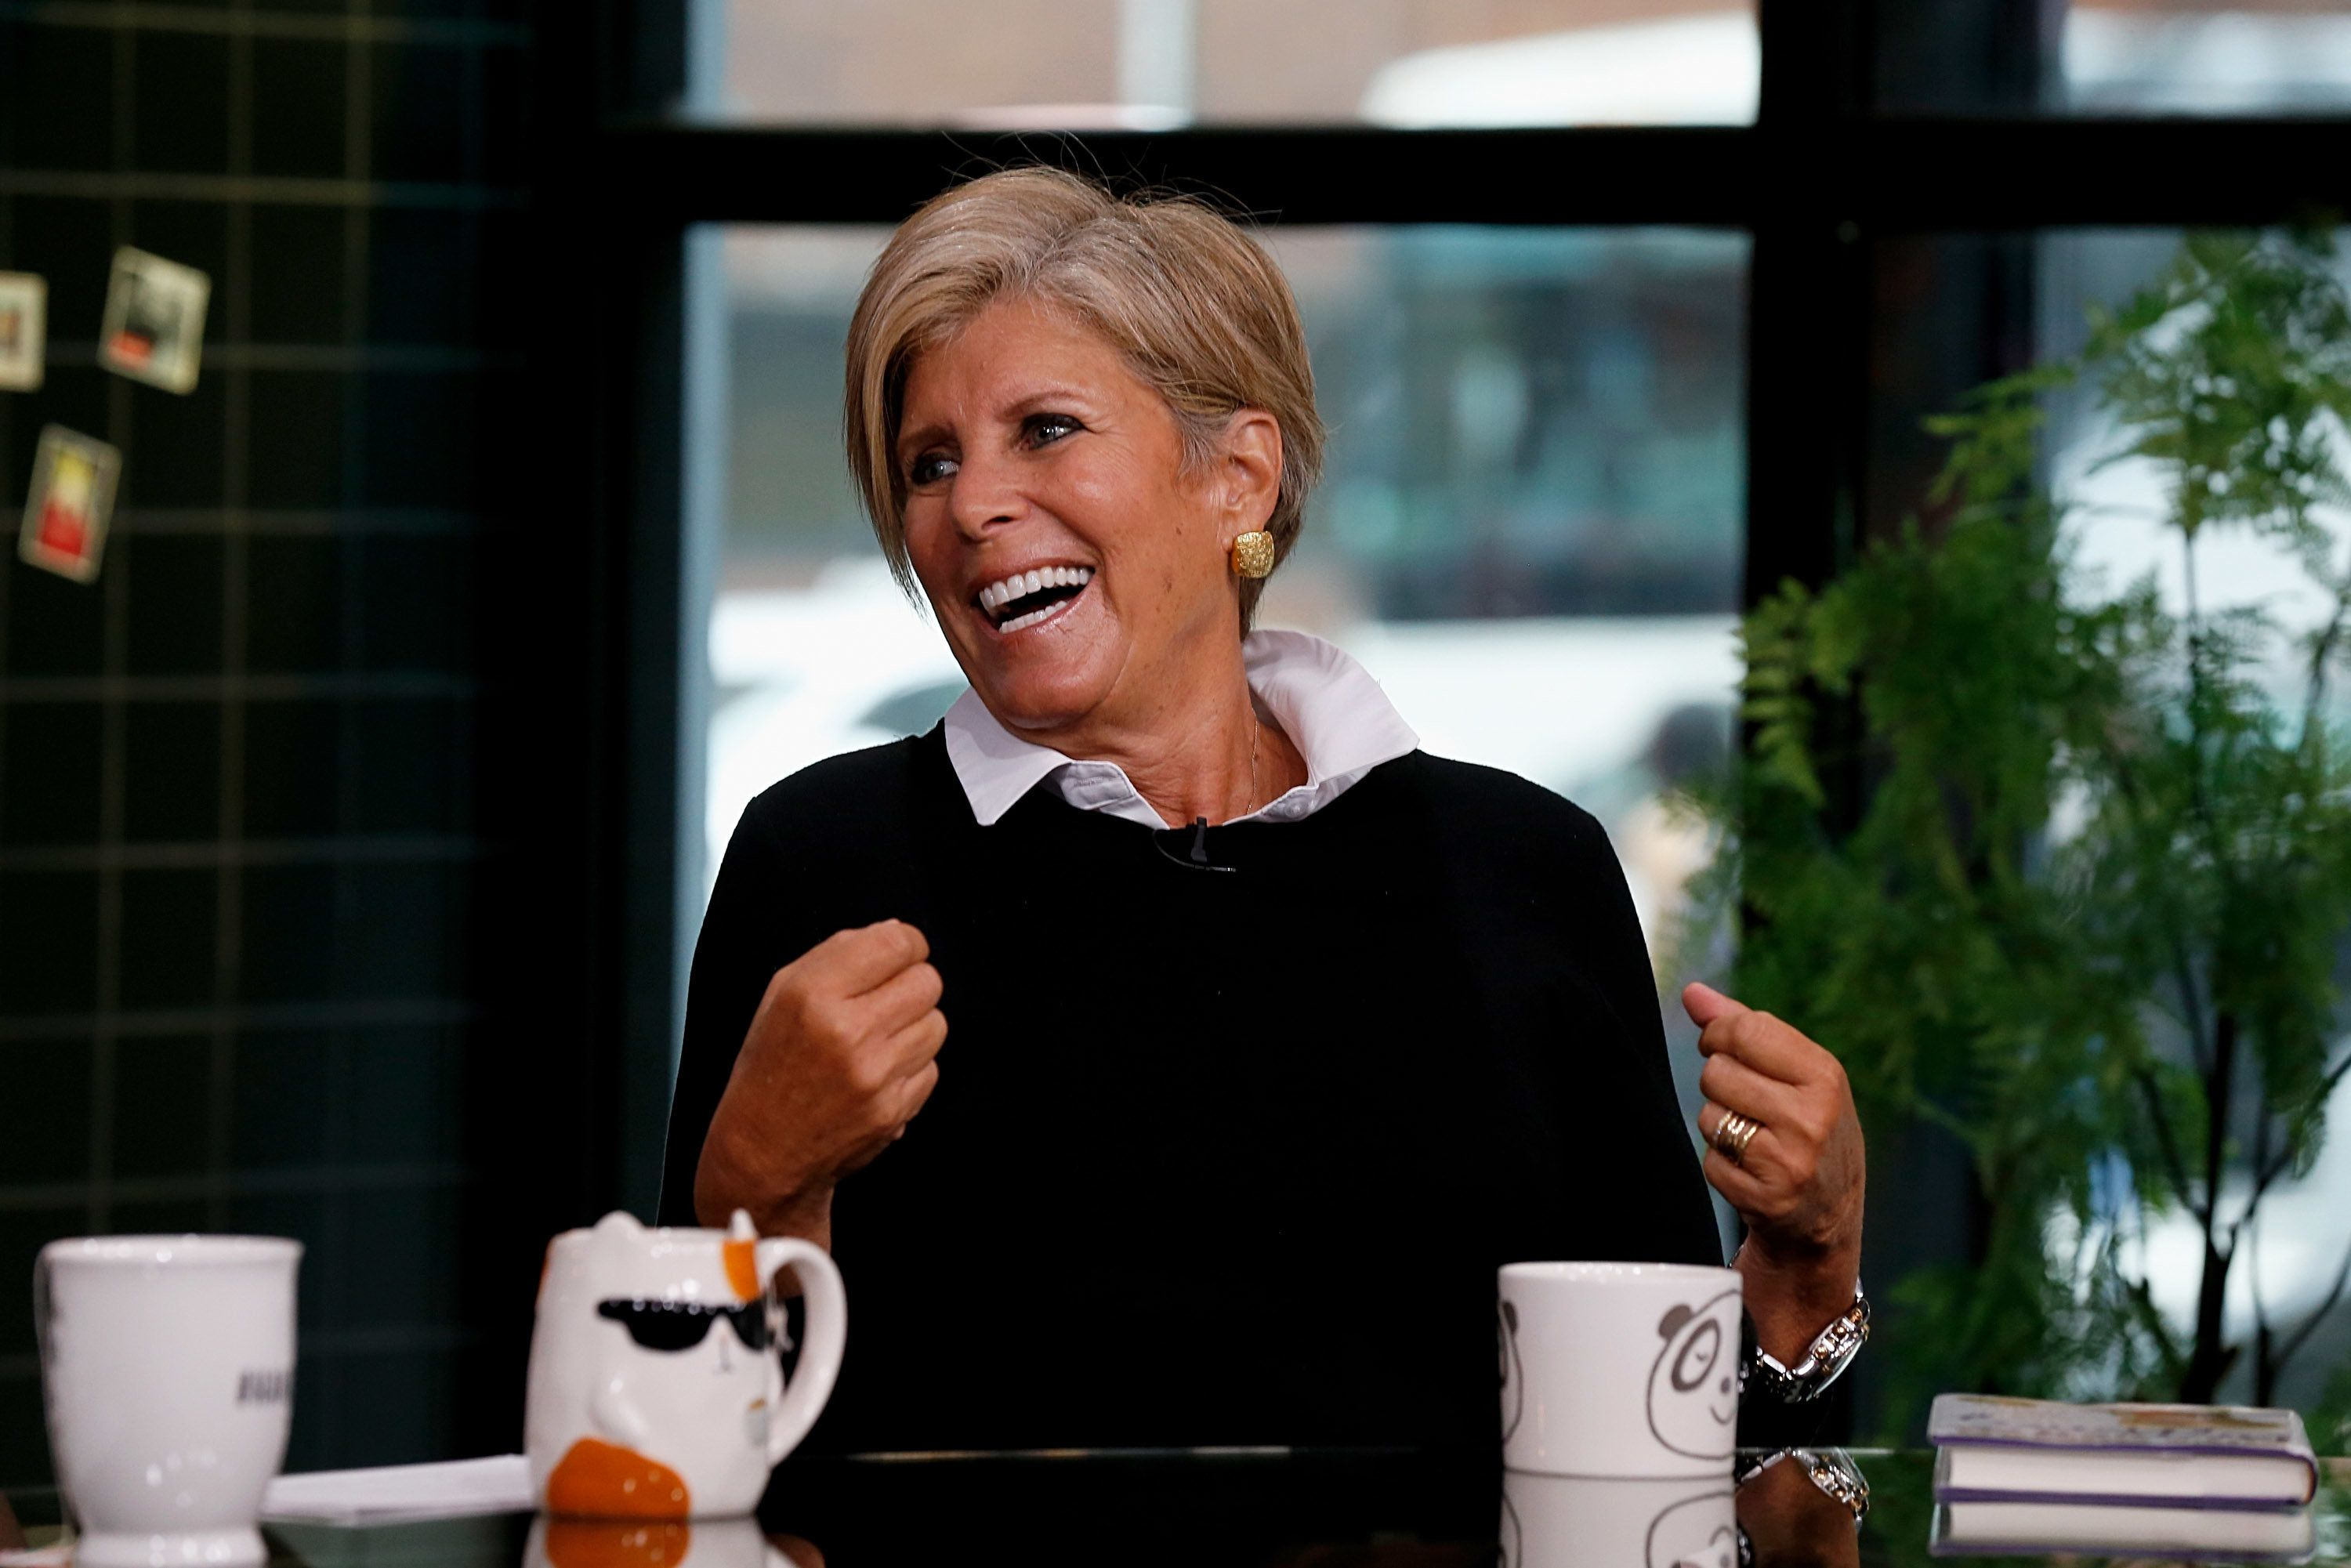 Read: Suze Orman Says You Need $5 Million To Retire Early. Here's The Truth.